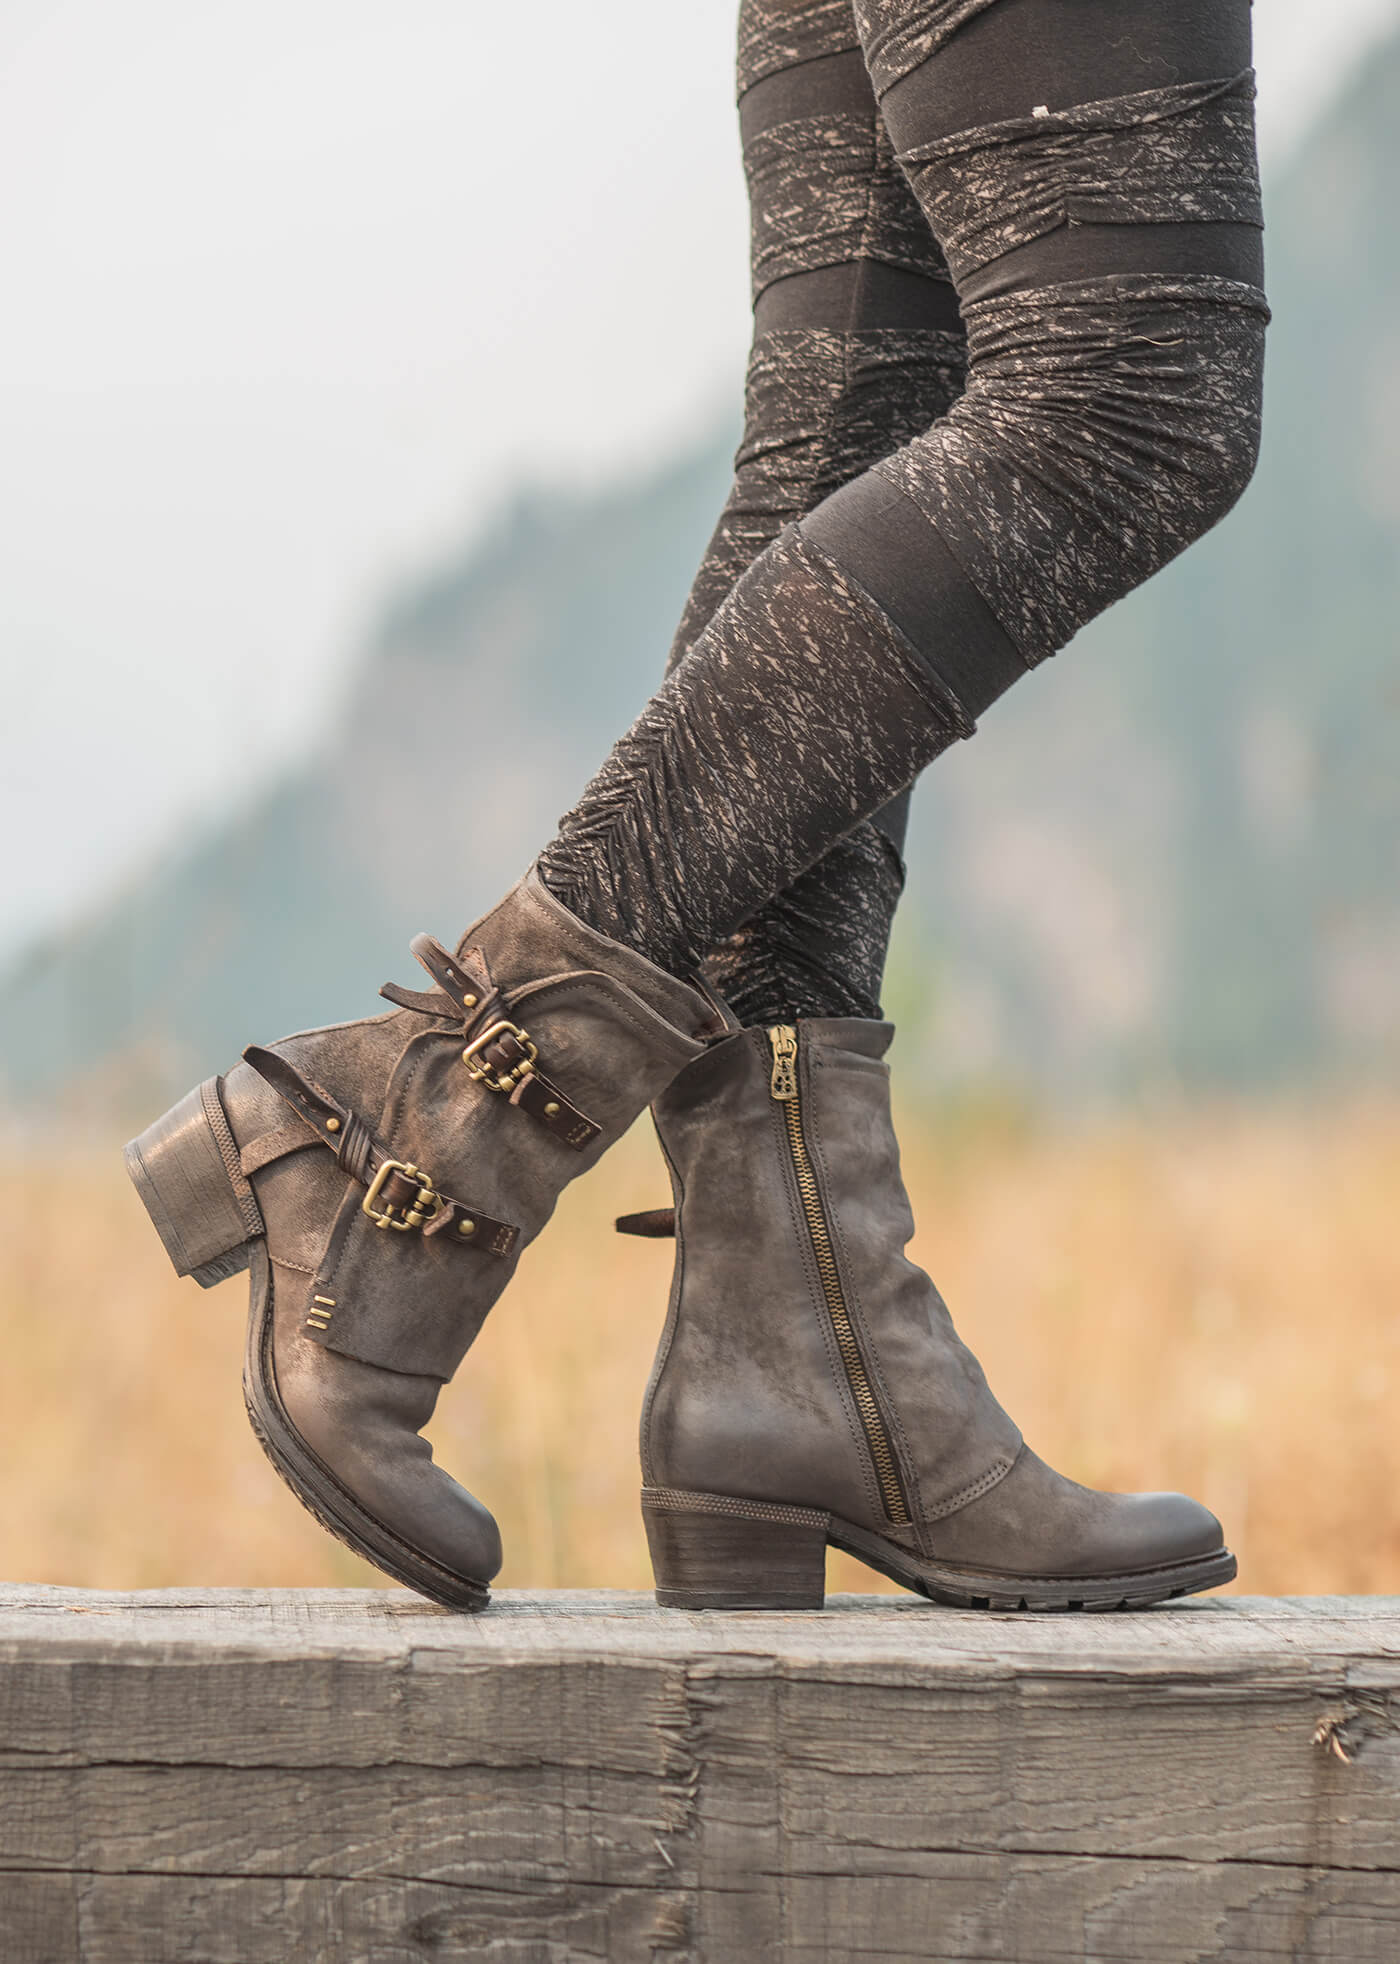 As98 Outlaw Boots Nomads Hemp Wear